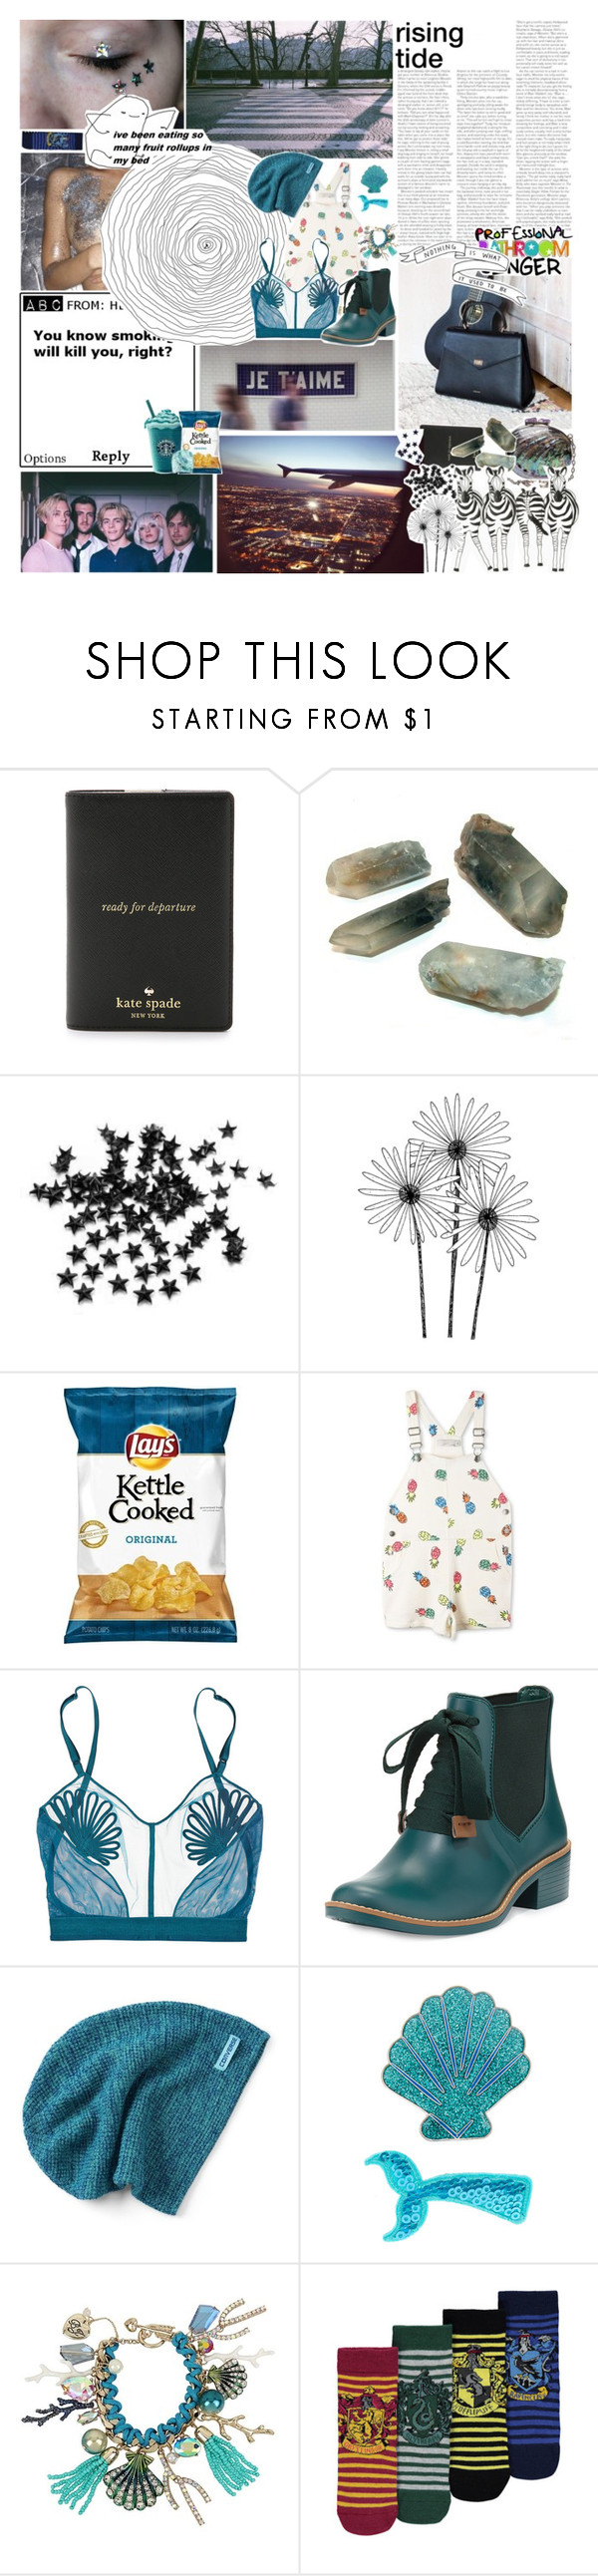 """""""♡ and i'm a-hopin' for raleigh, i can see my baby tonight"""" by nervous-touch ❤ liked on Polyvore featuring Kate Spade, INC International Concepts, Nokia, STELLA McCARTNEY, La Perla, Bernardo, Converse, claire's, Betsey Johnson and George"""